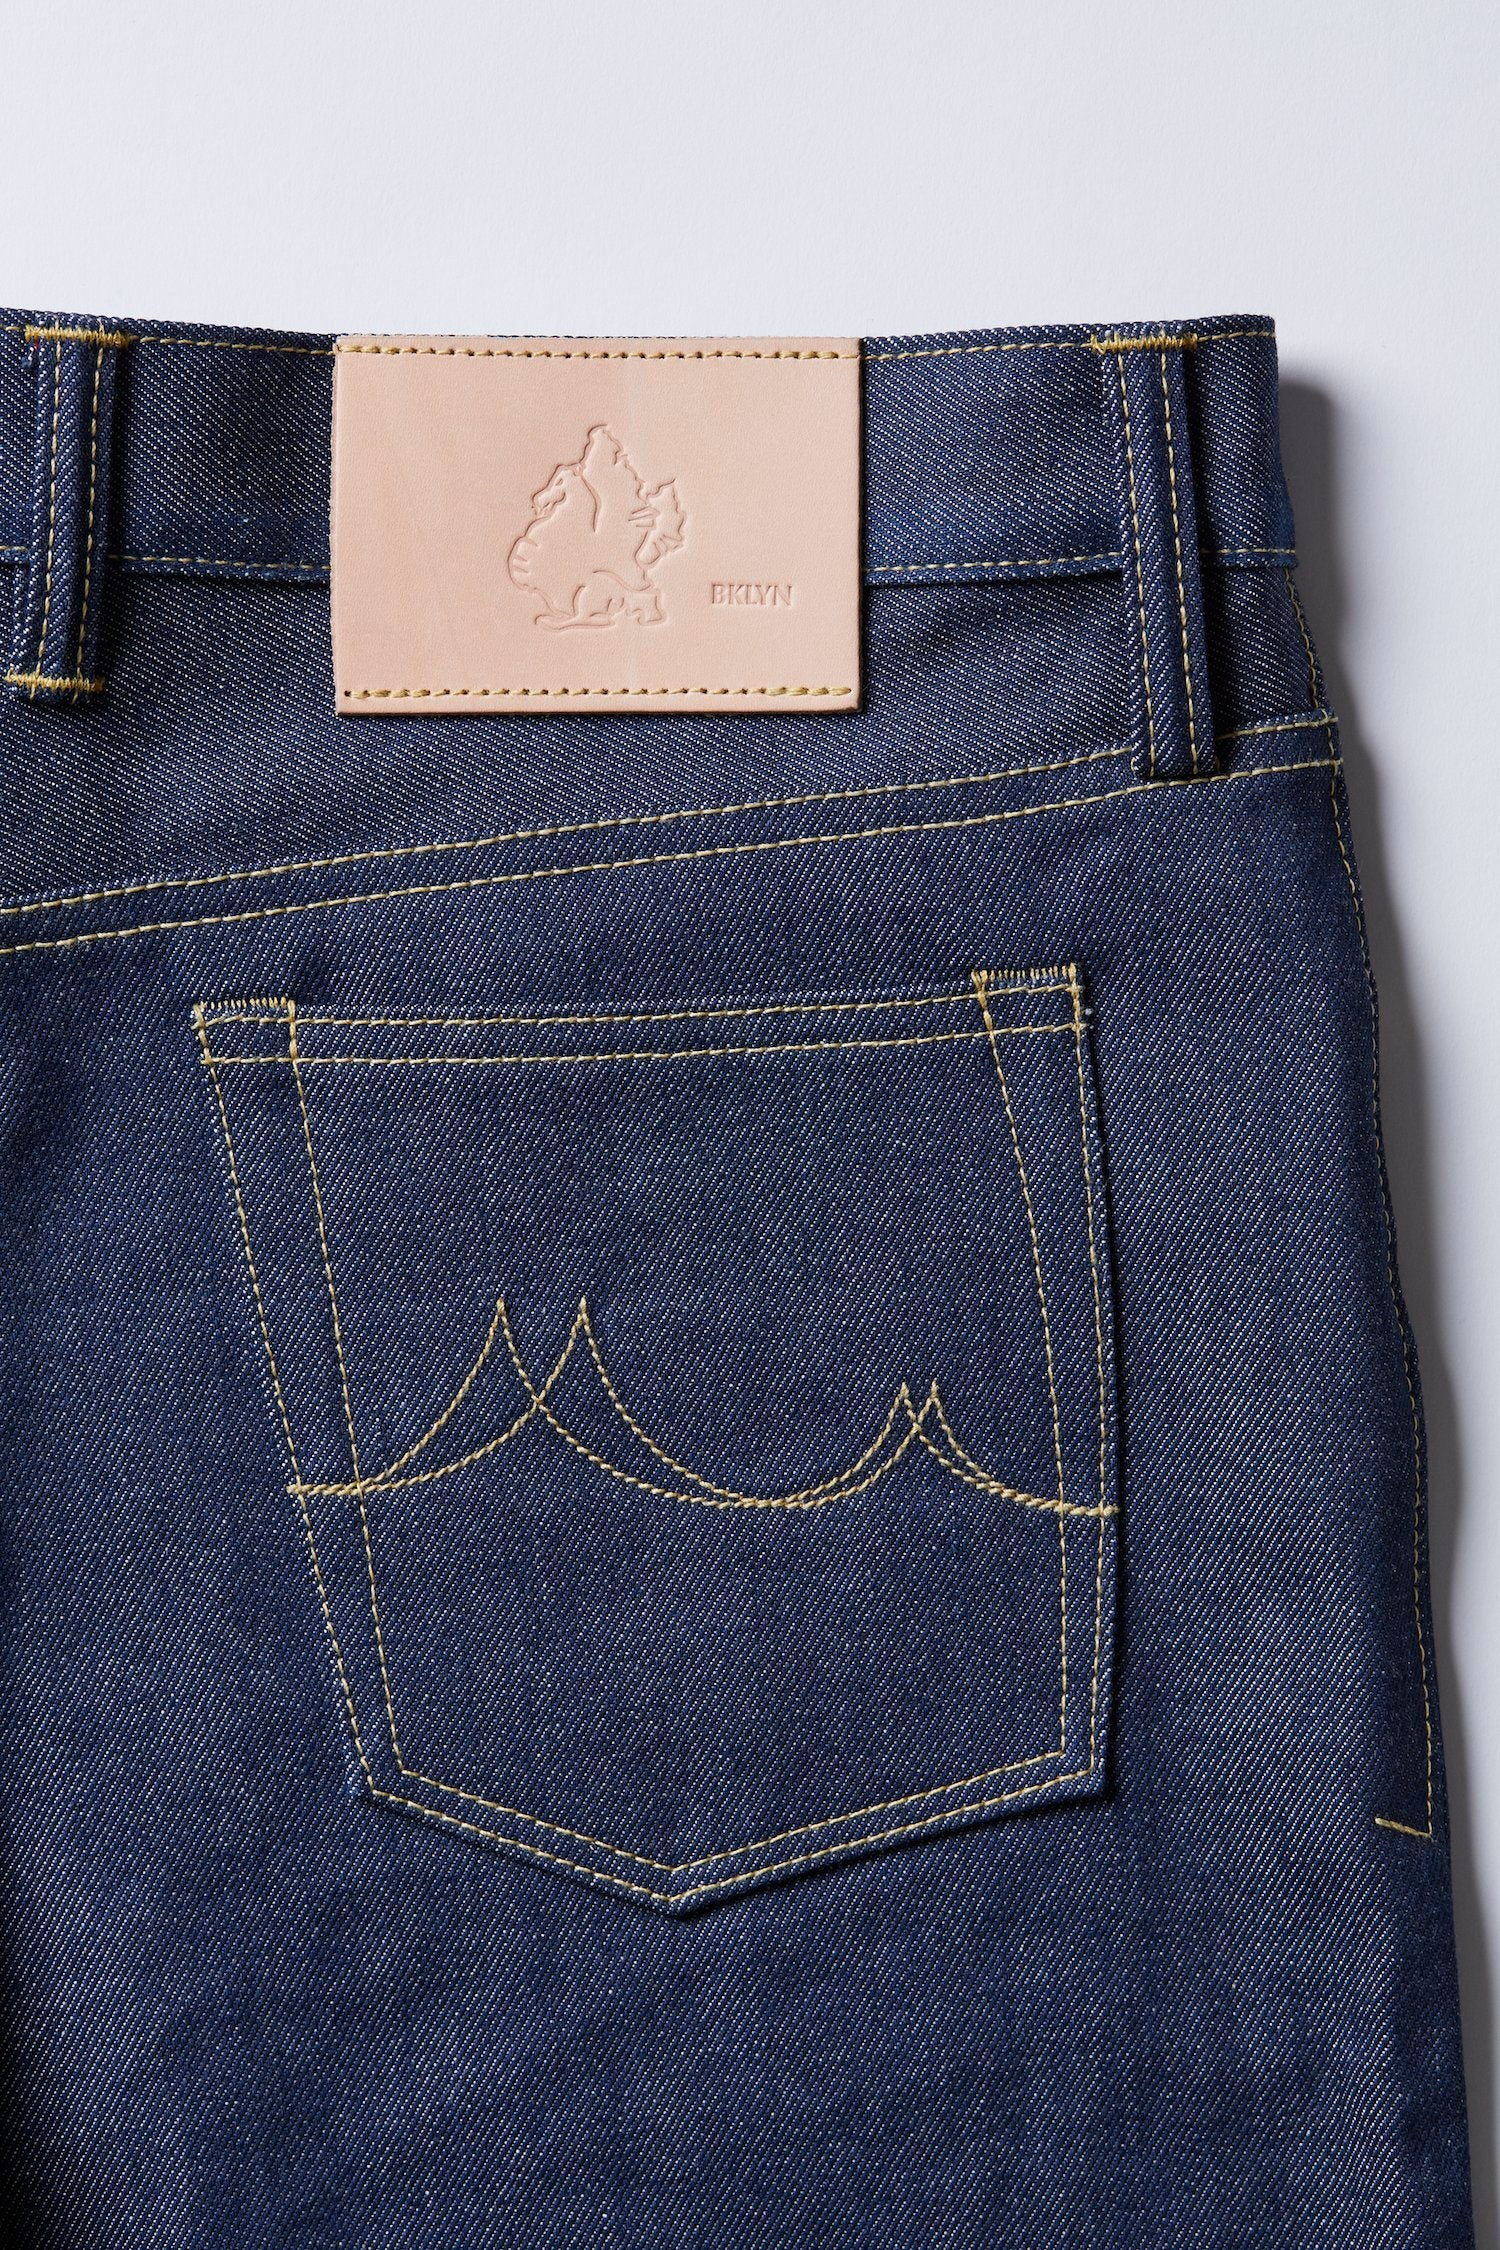 J12 Natural Indigo - FITTED Underground